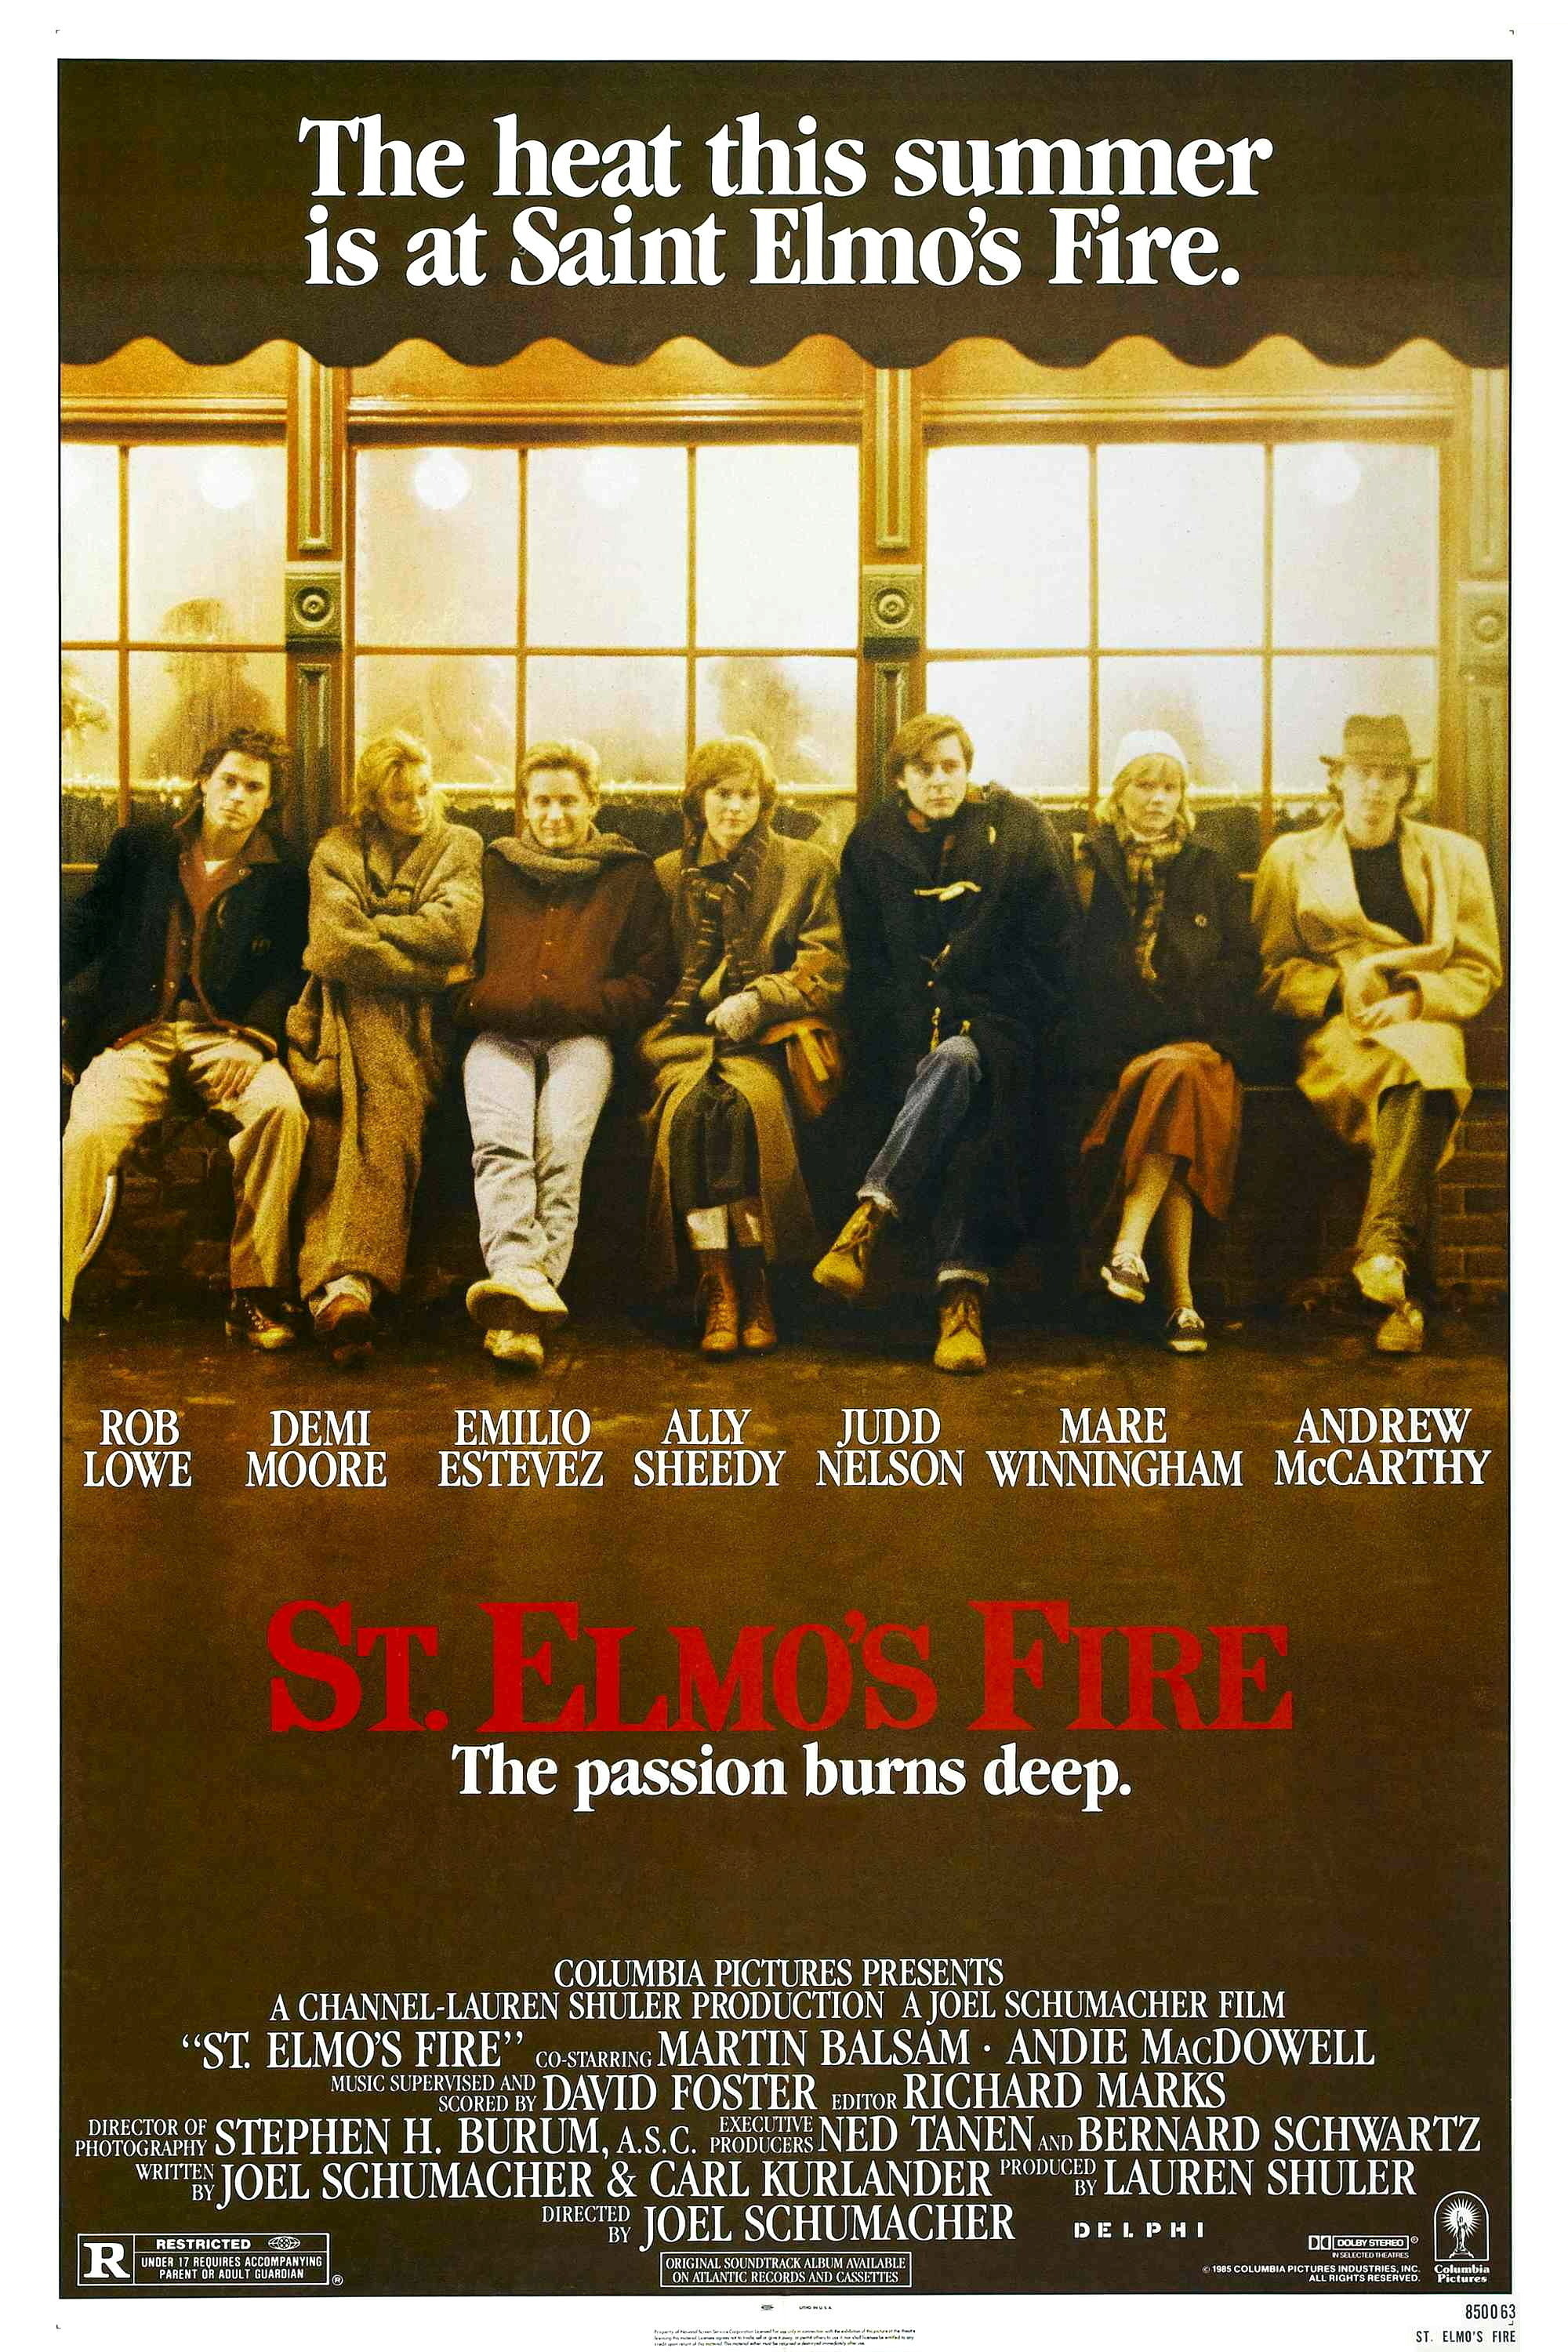 stelmosfire St. Elmos Fire Might Be the Worst Movie Ever